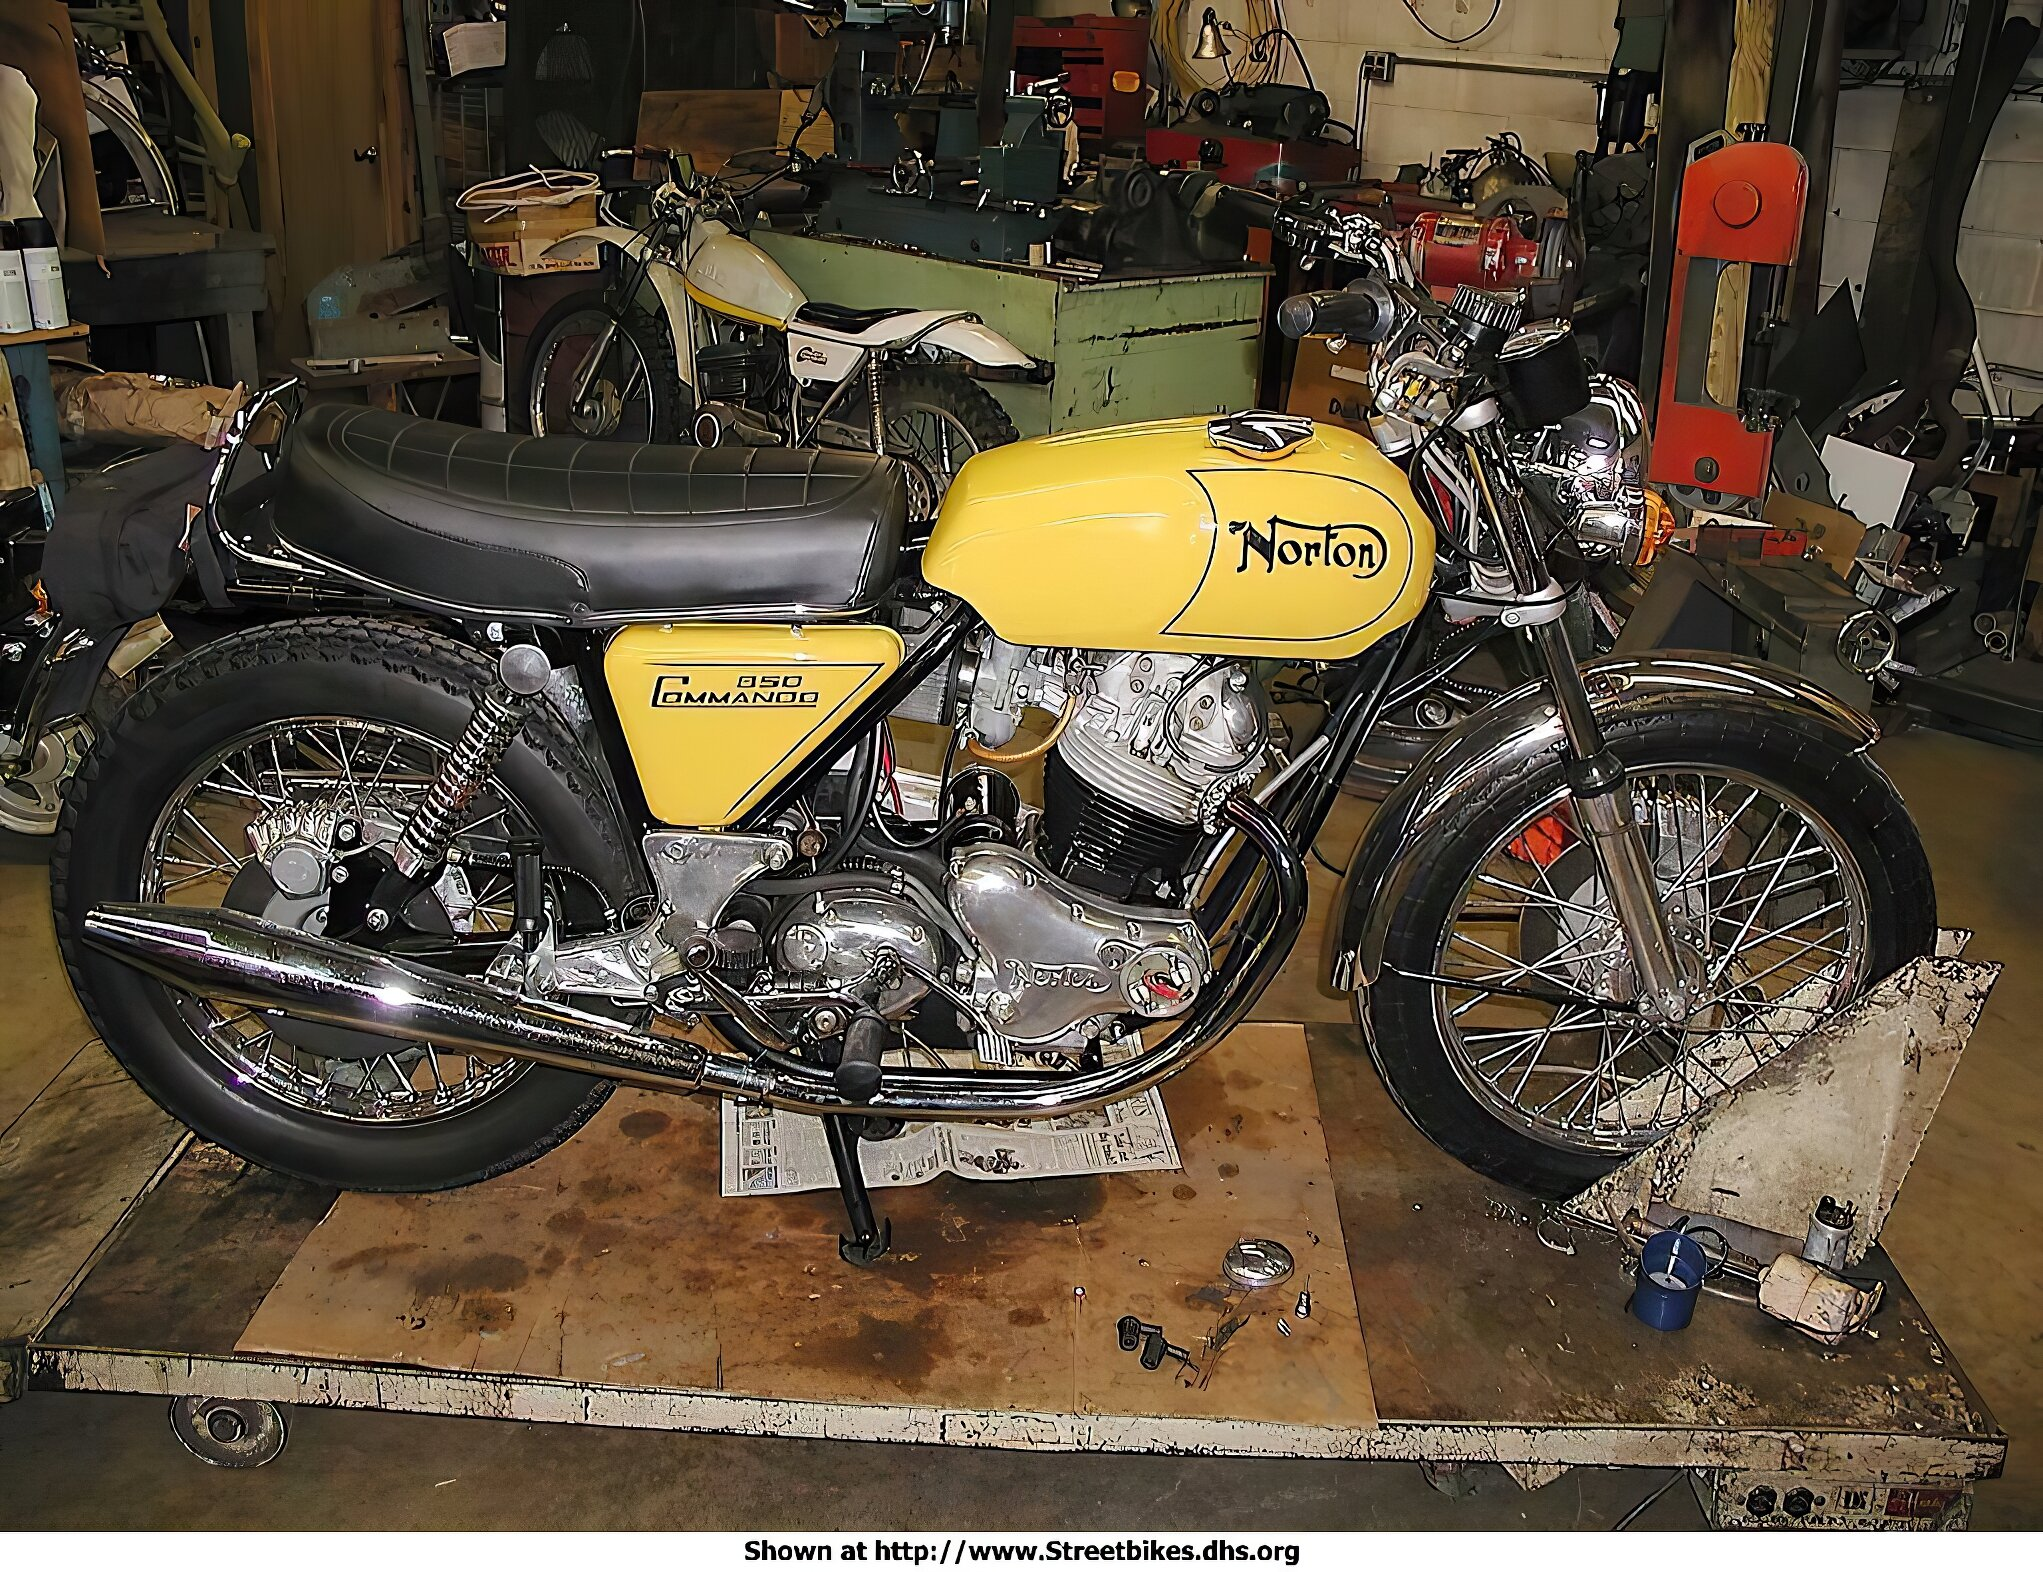 Norton 850 Commando - ID: 923